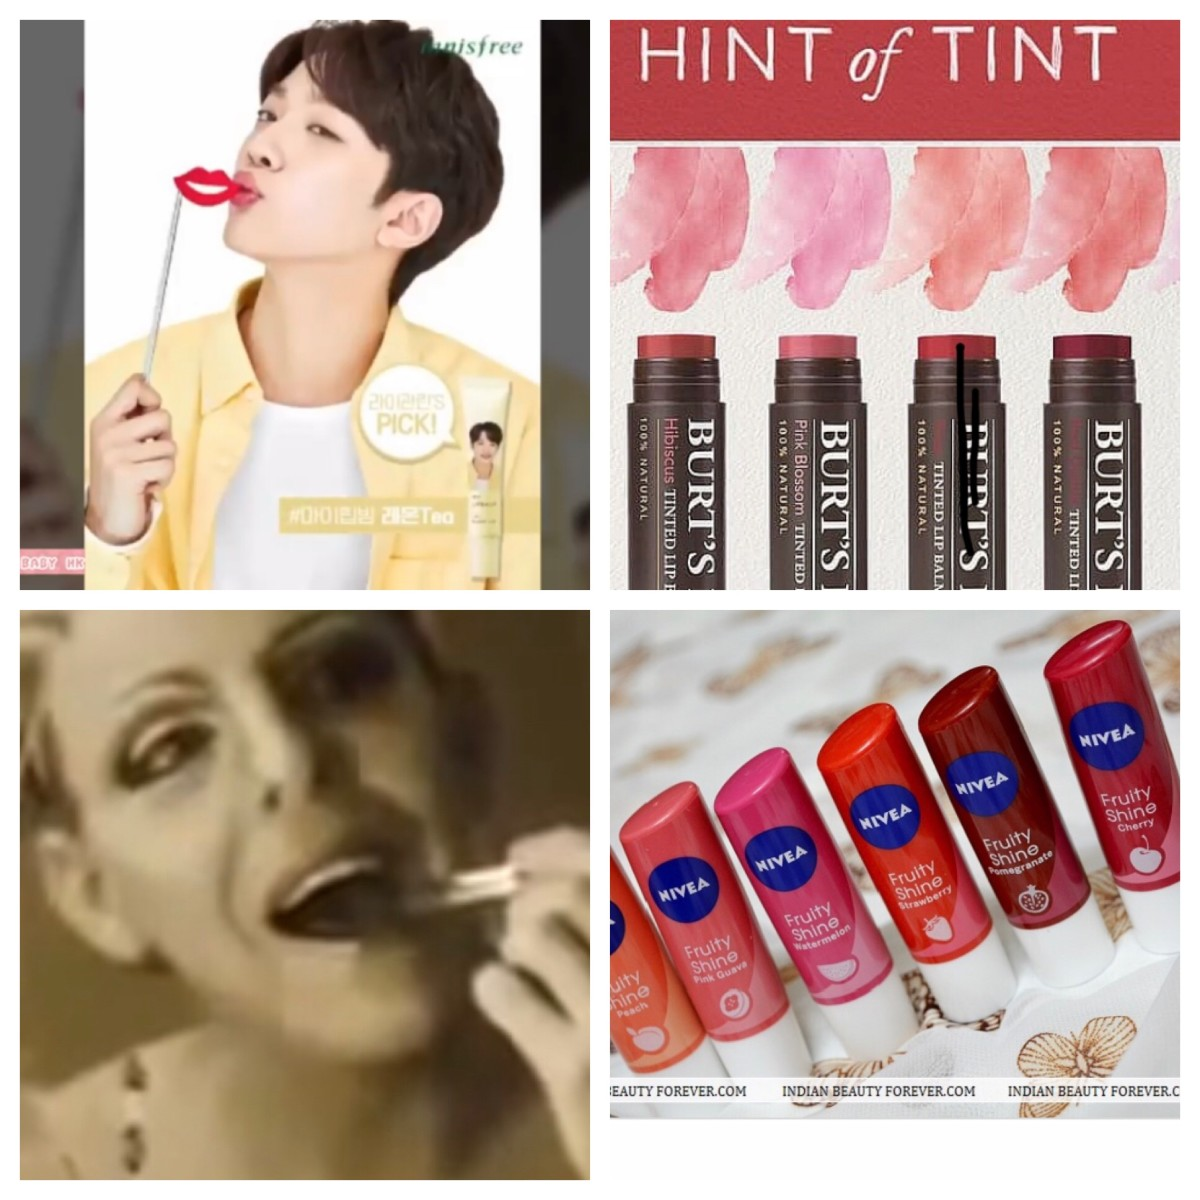 Tinted lip products are becoming increasingly popular with men, helped along by K-pop and availability as unisex items